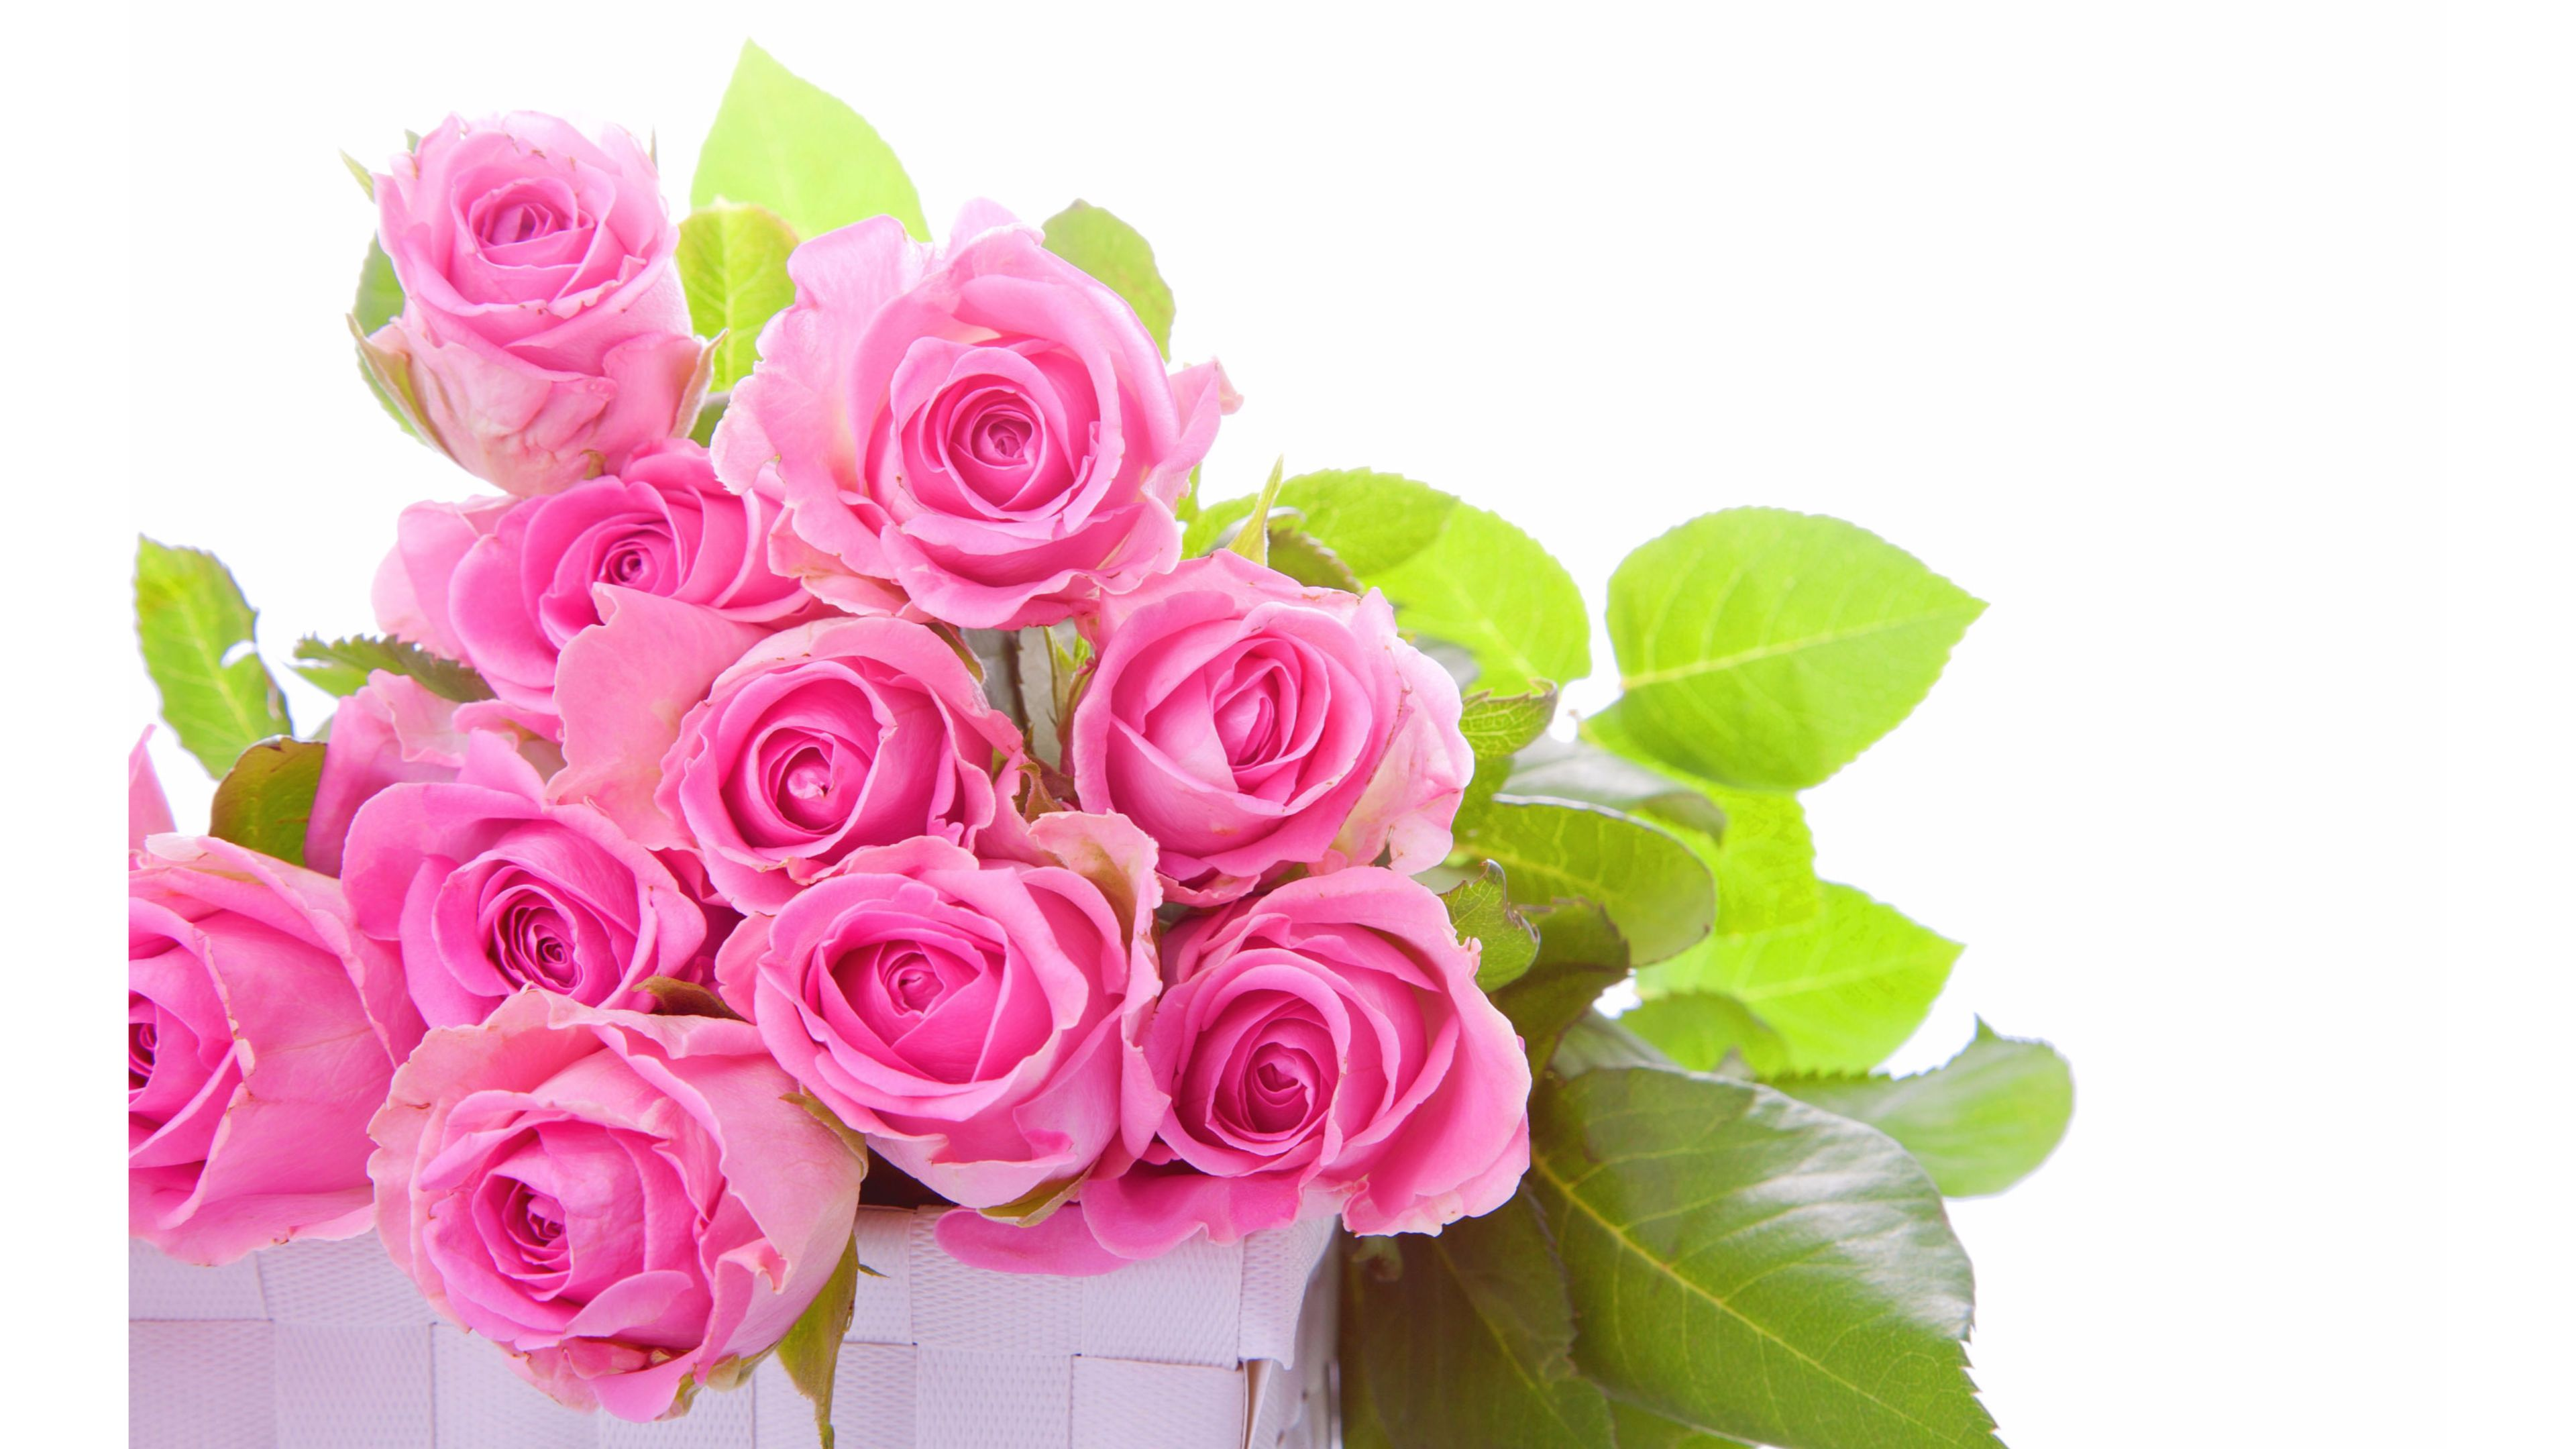 How To Arrange Beautiful Flowers Bouquets For Mom S Birthday Mogul